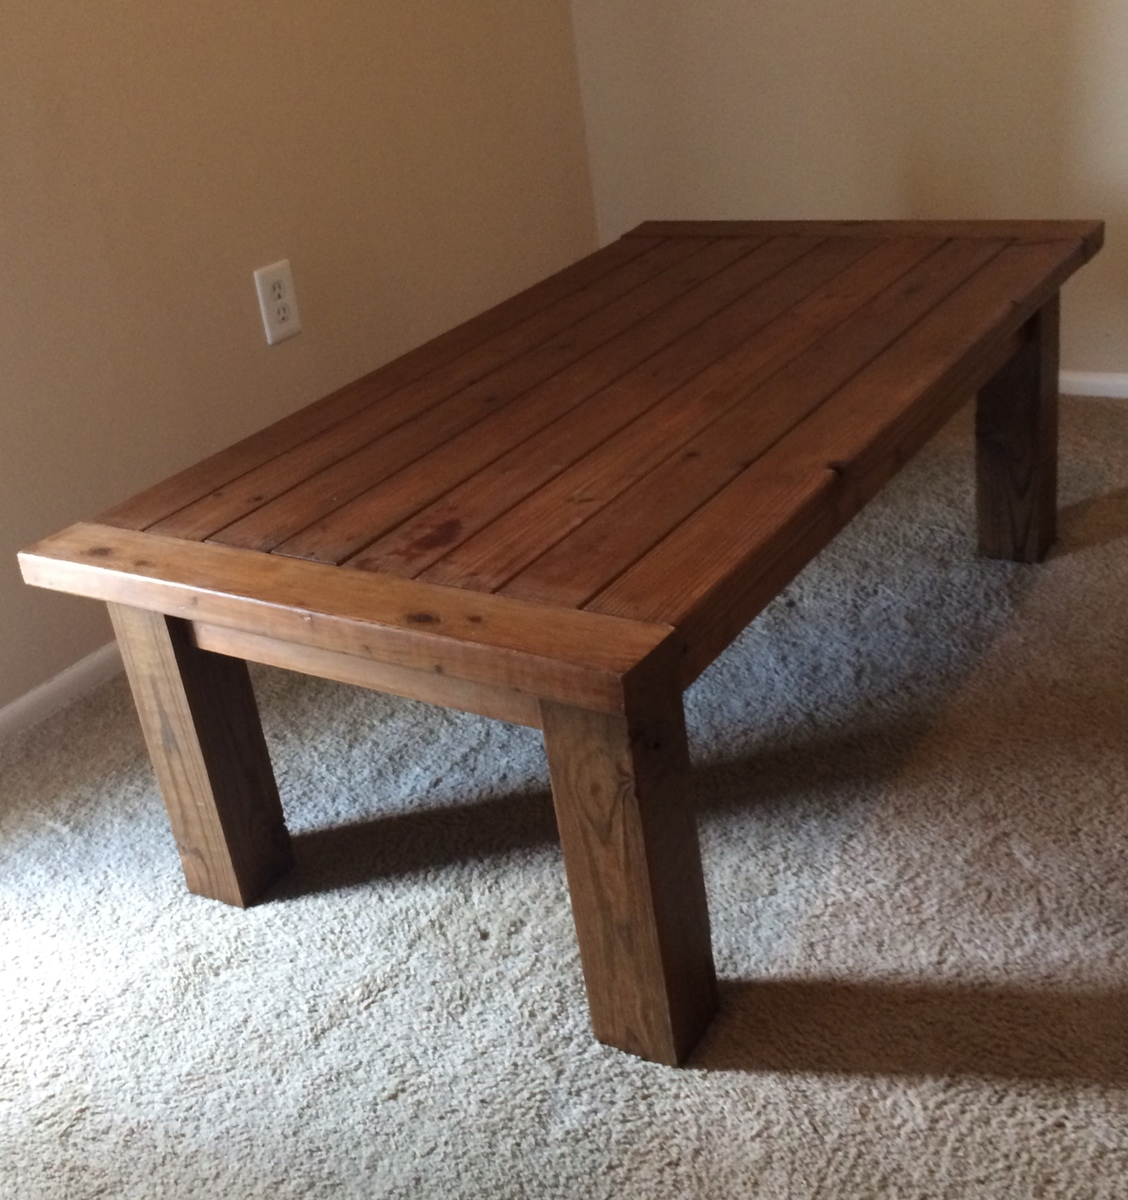 Tryde Coffee Table And End Tables - DIY Projects